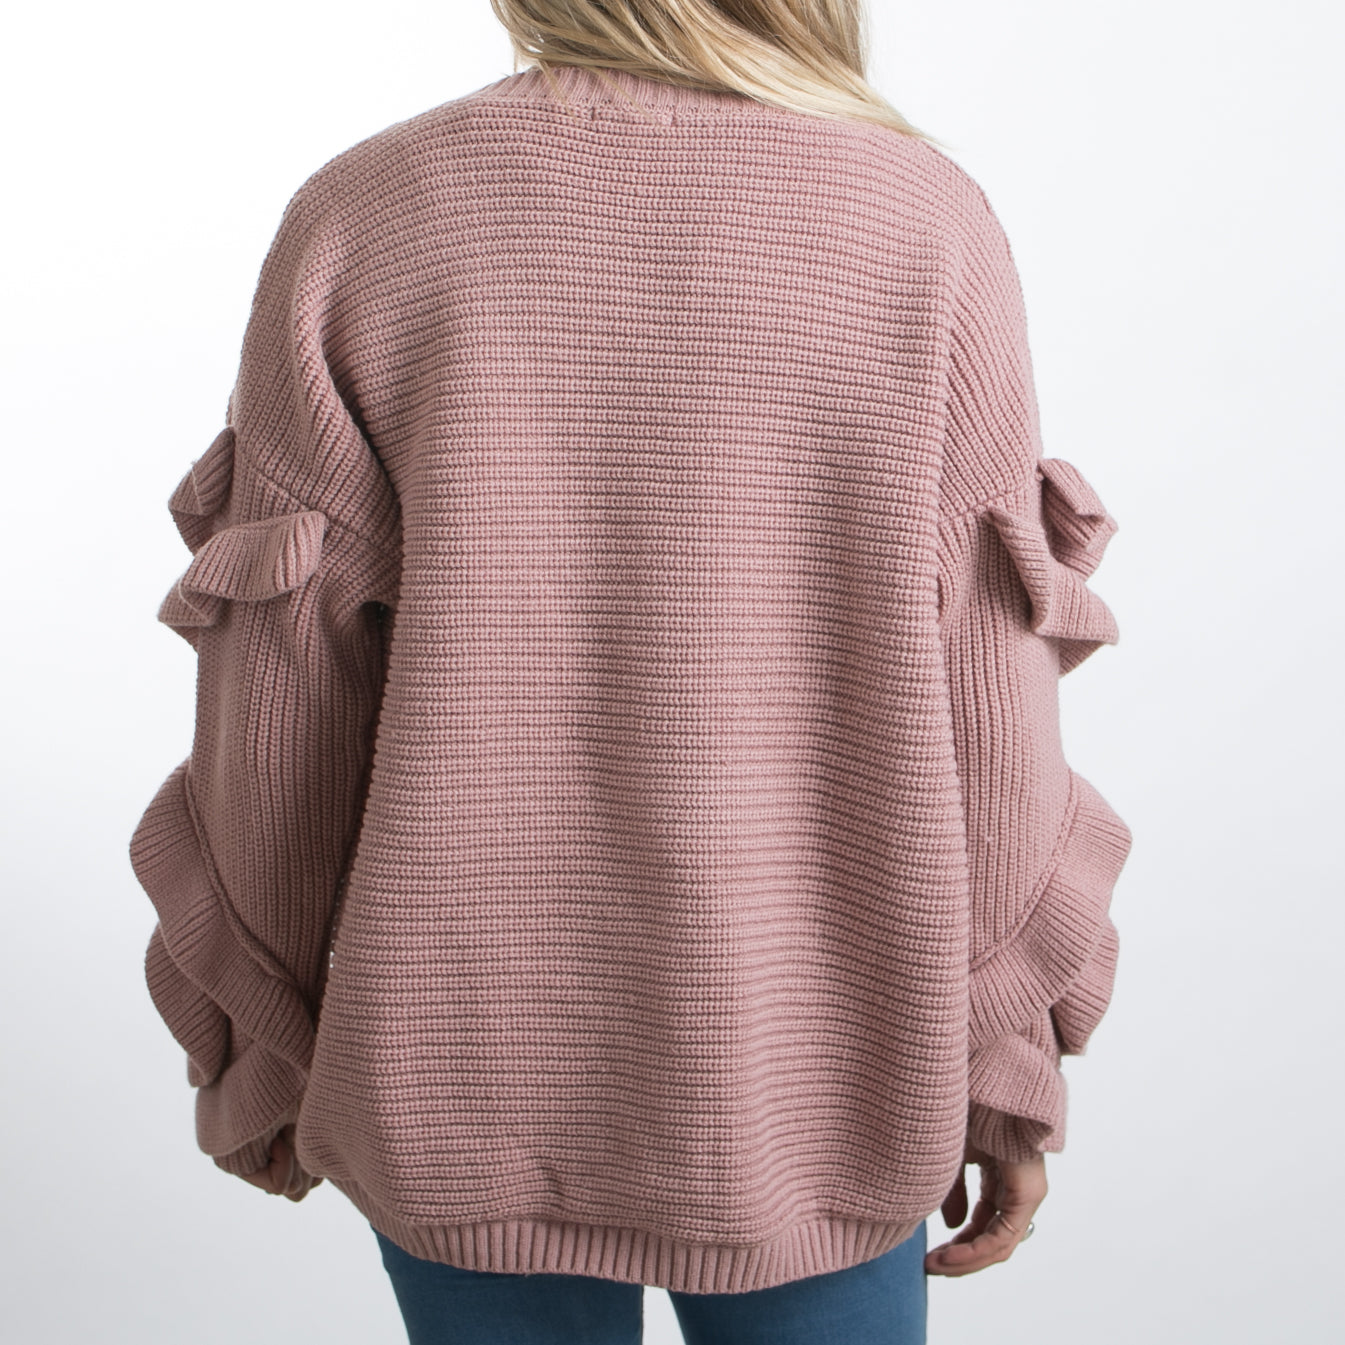 The Josie Sweater